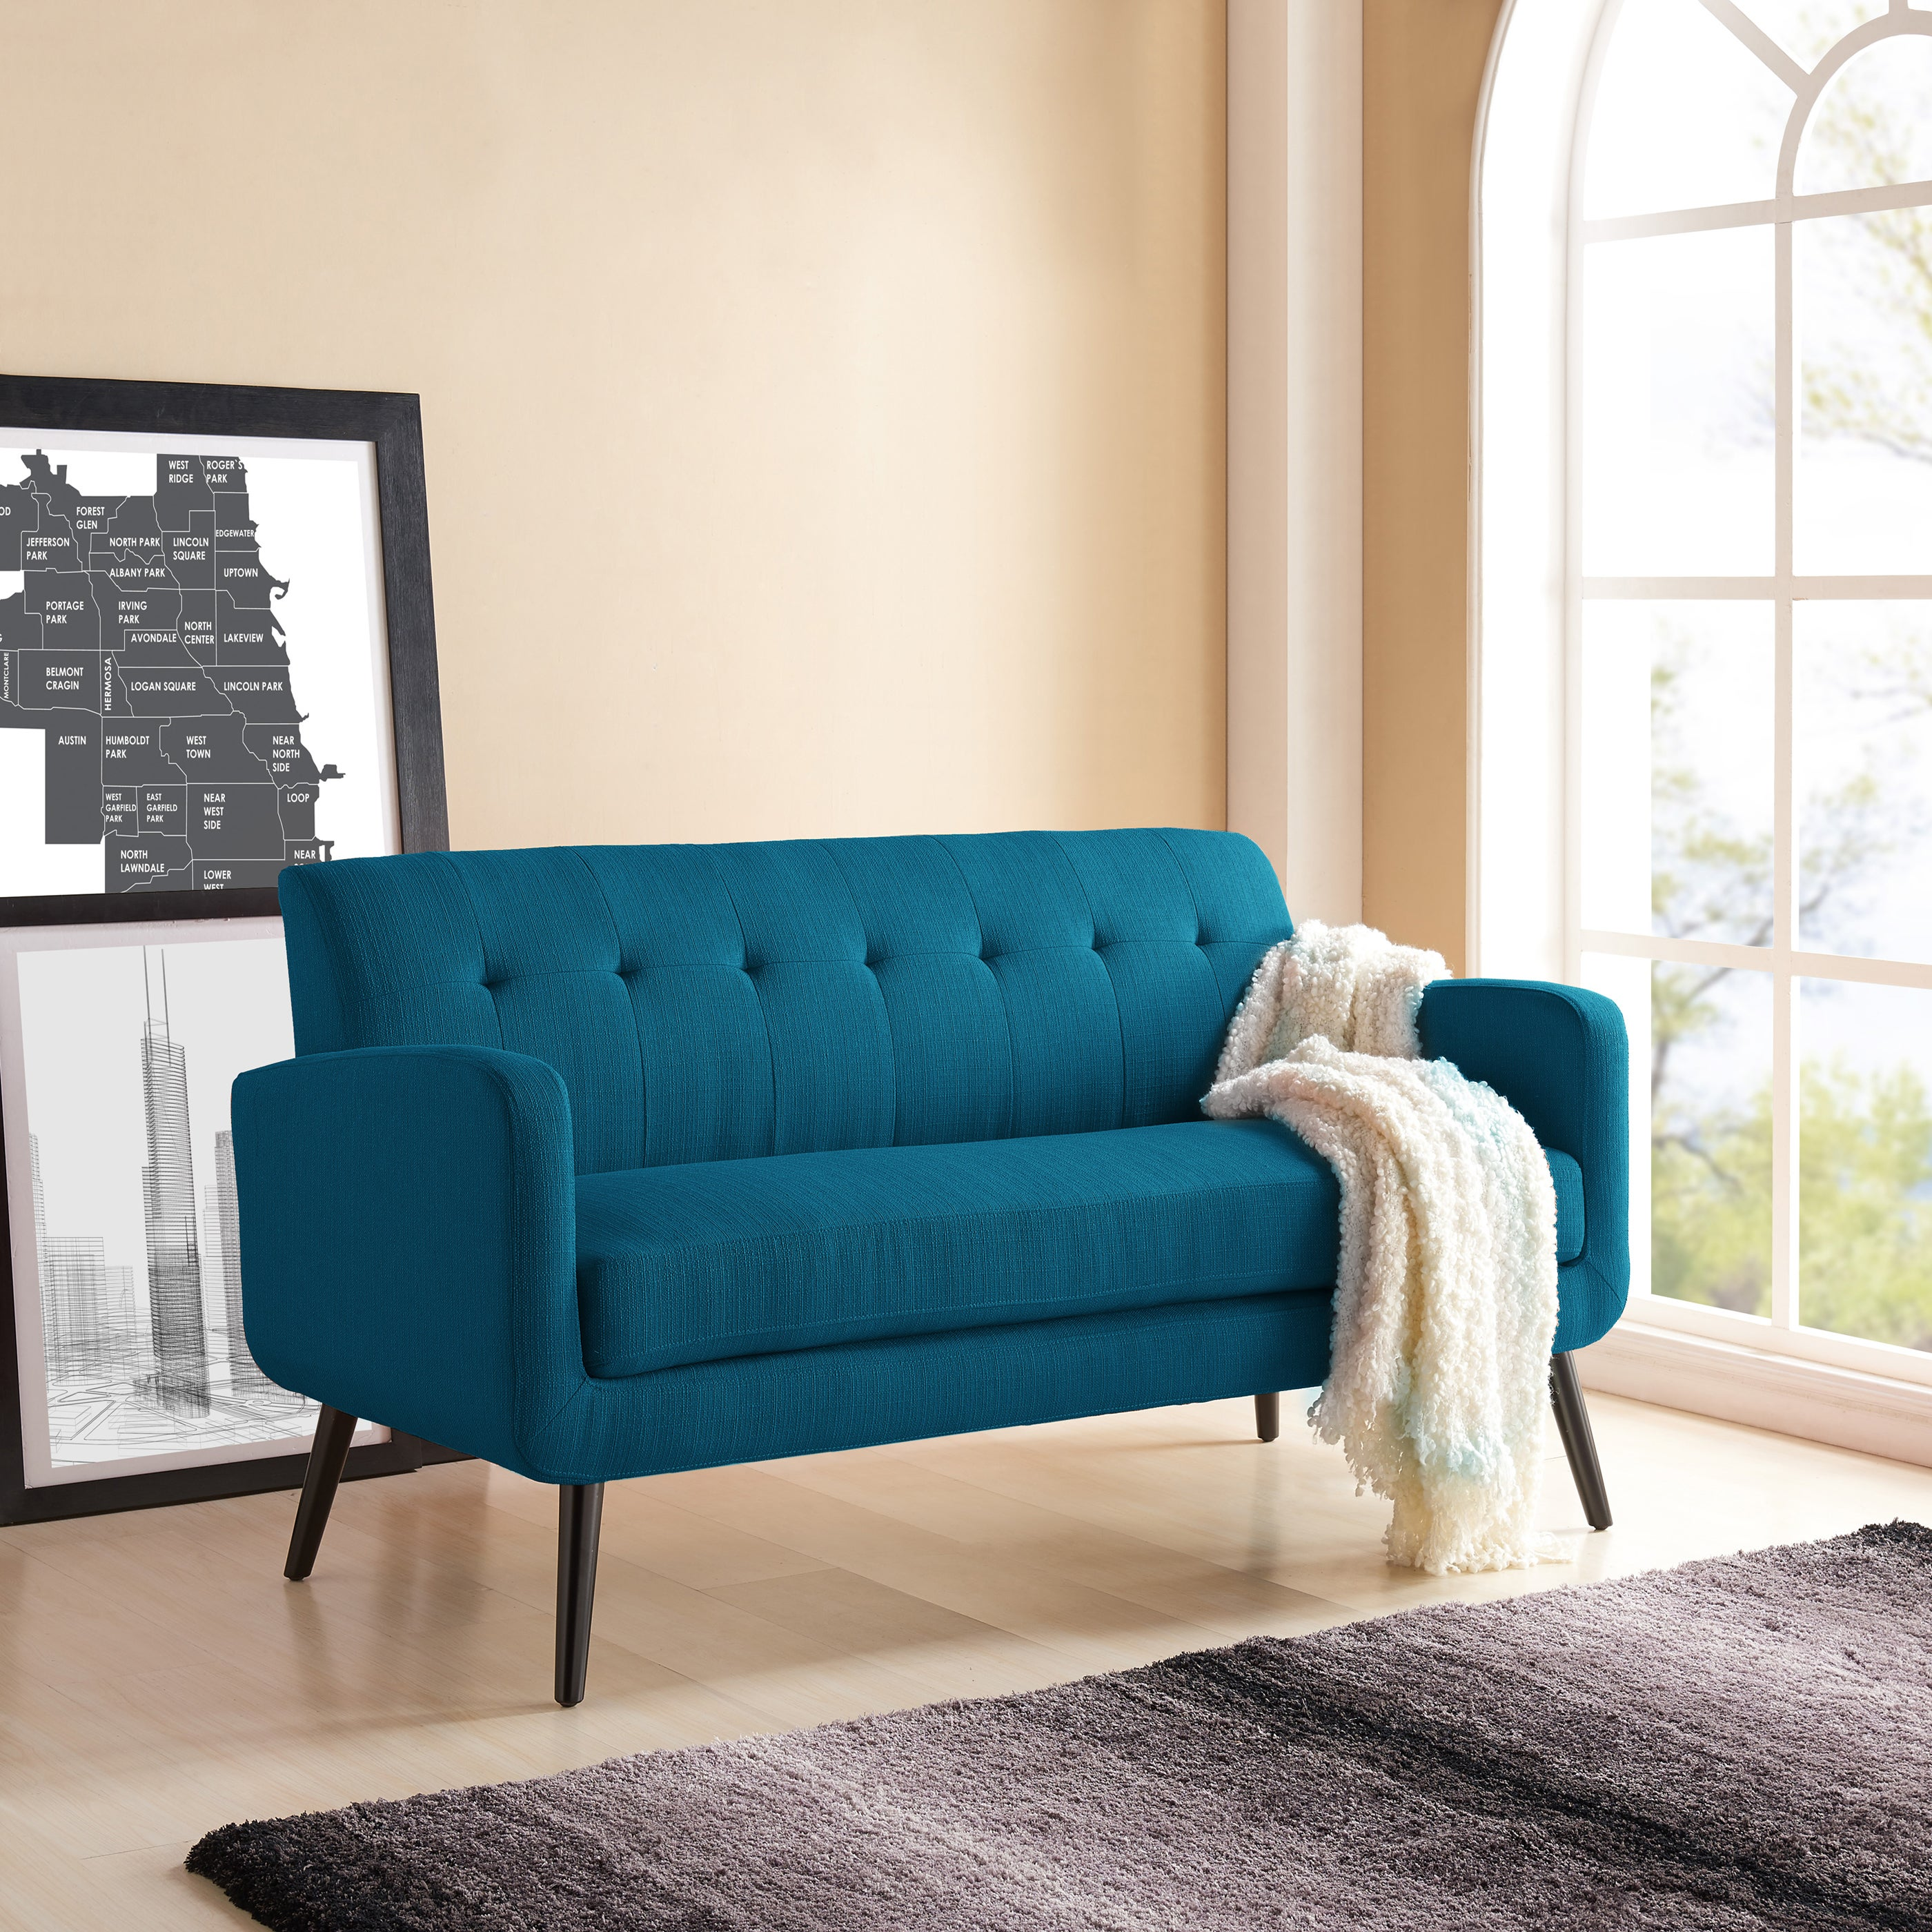 Handy Living Kingston Mid Century Modern Peacock Blue Linen Sofa Overstock 17878815